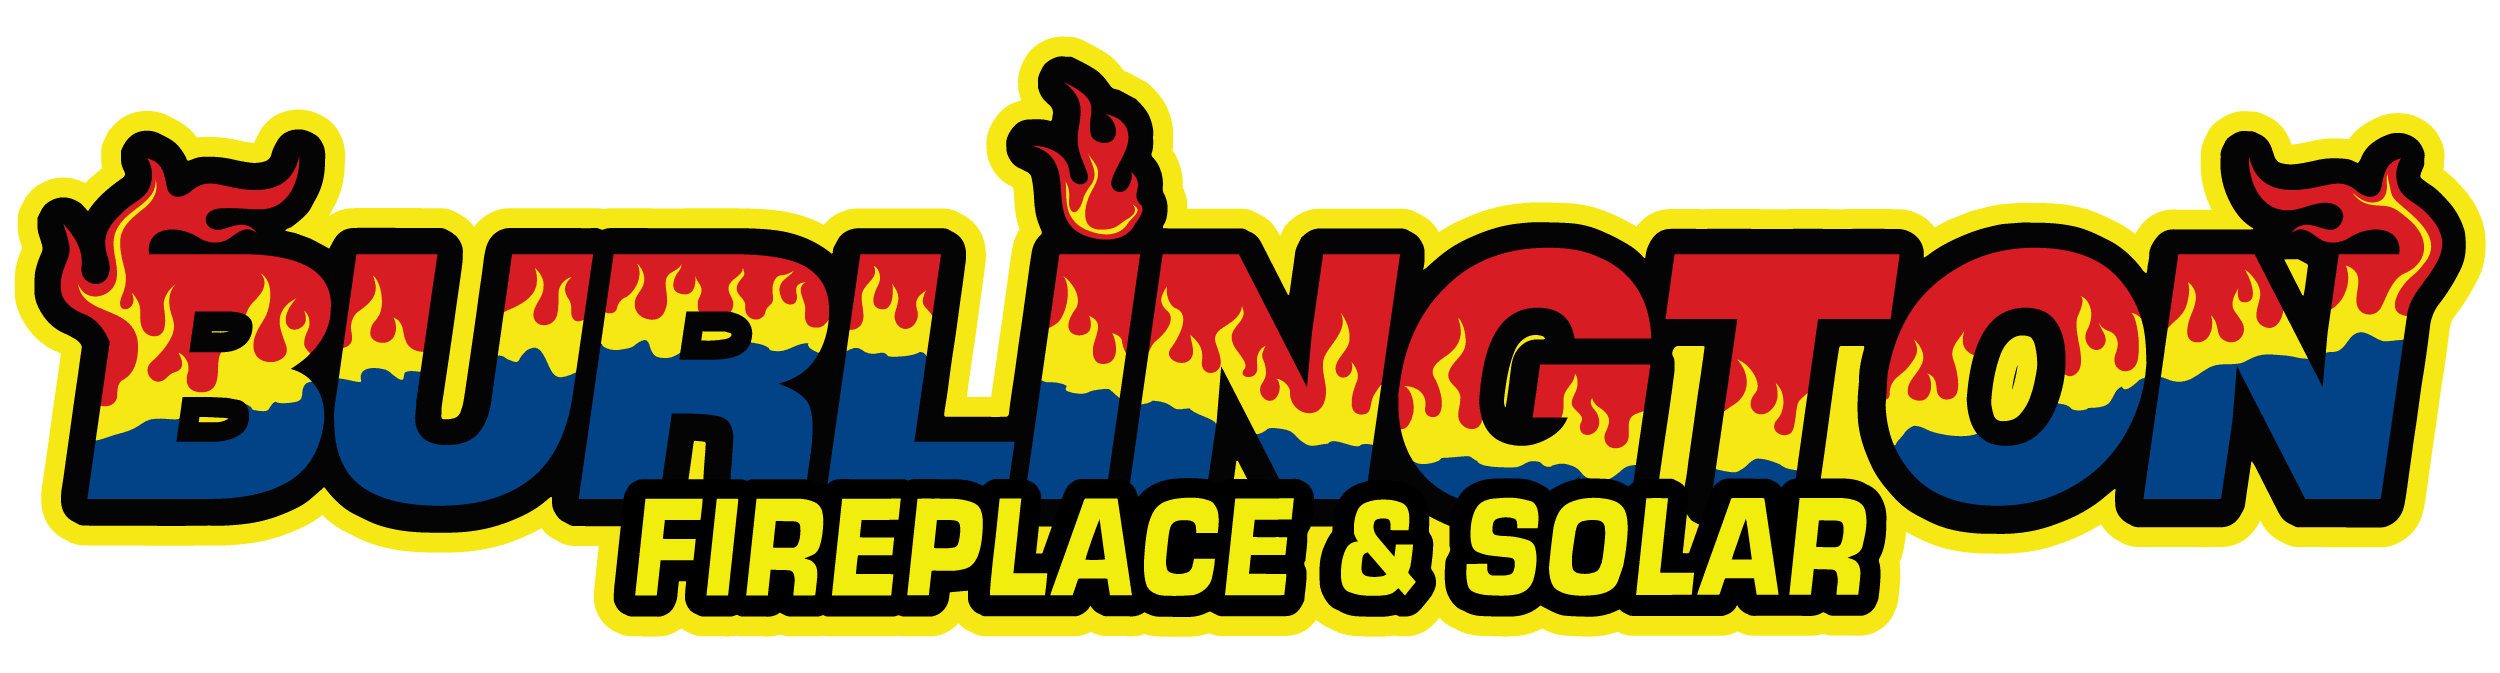 BurlingtonFireplaceNewLogo (1)